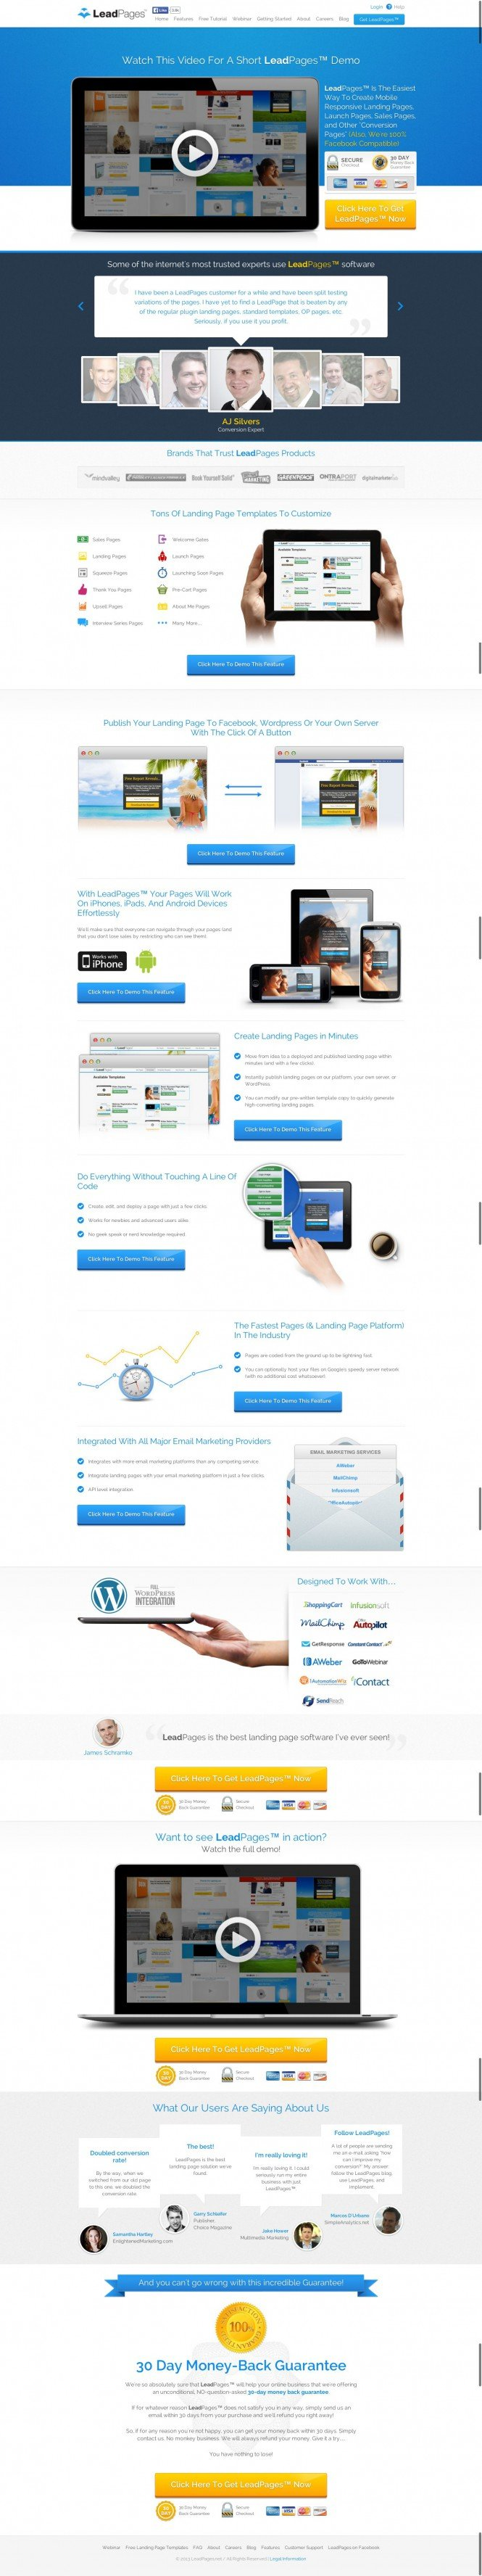 LeadPages Software - Mobile Responsive Landing Page Generator